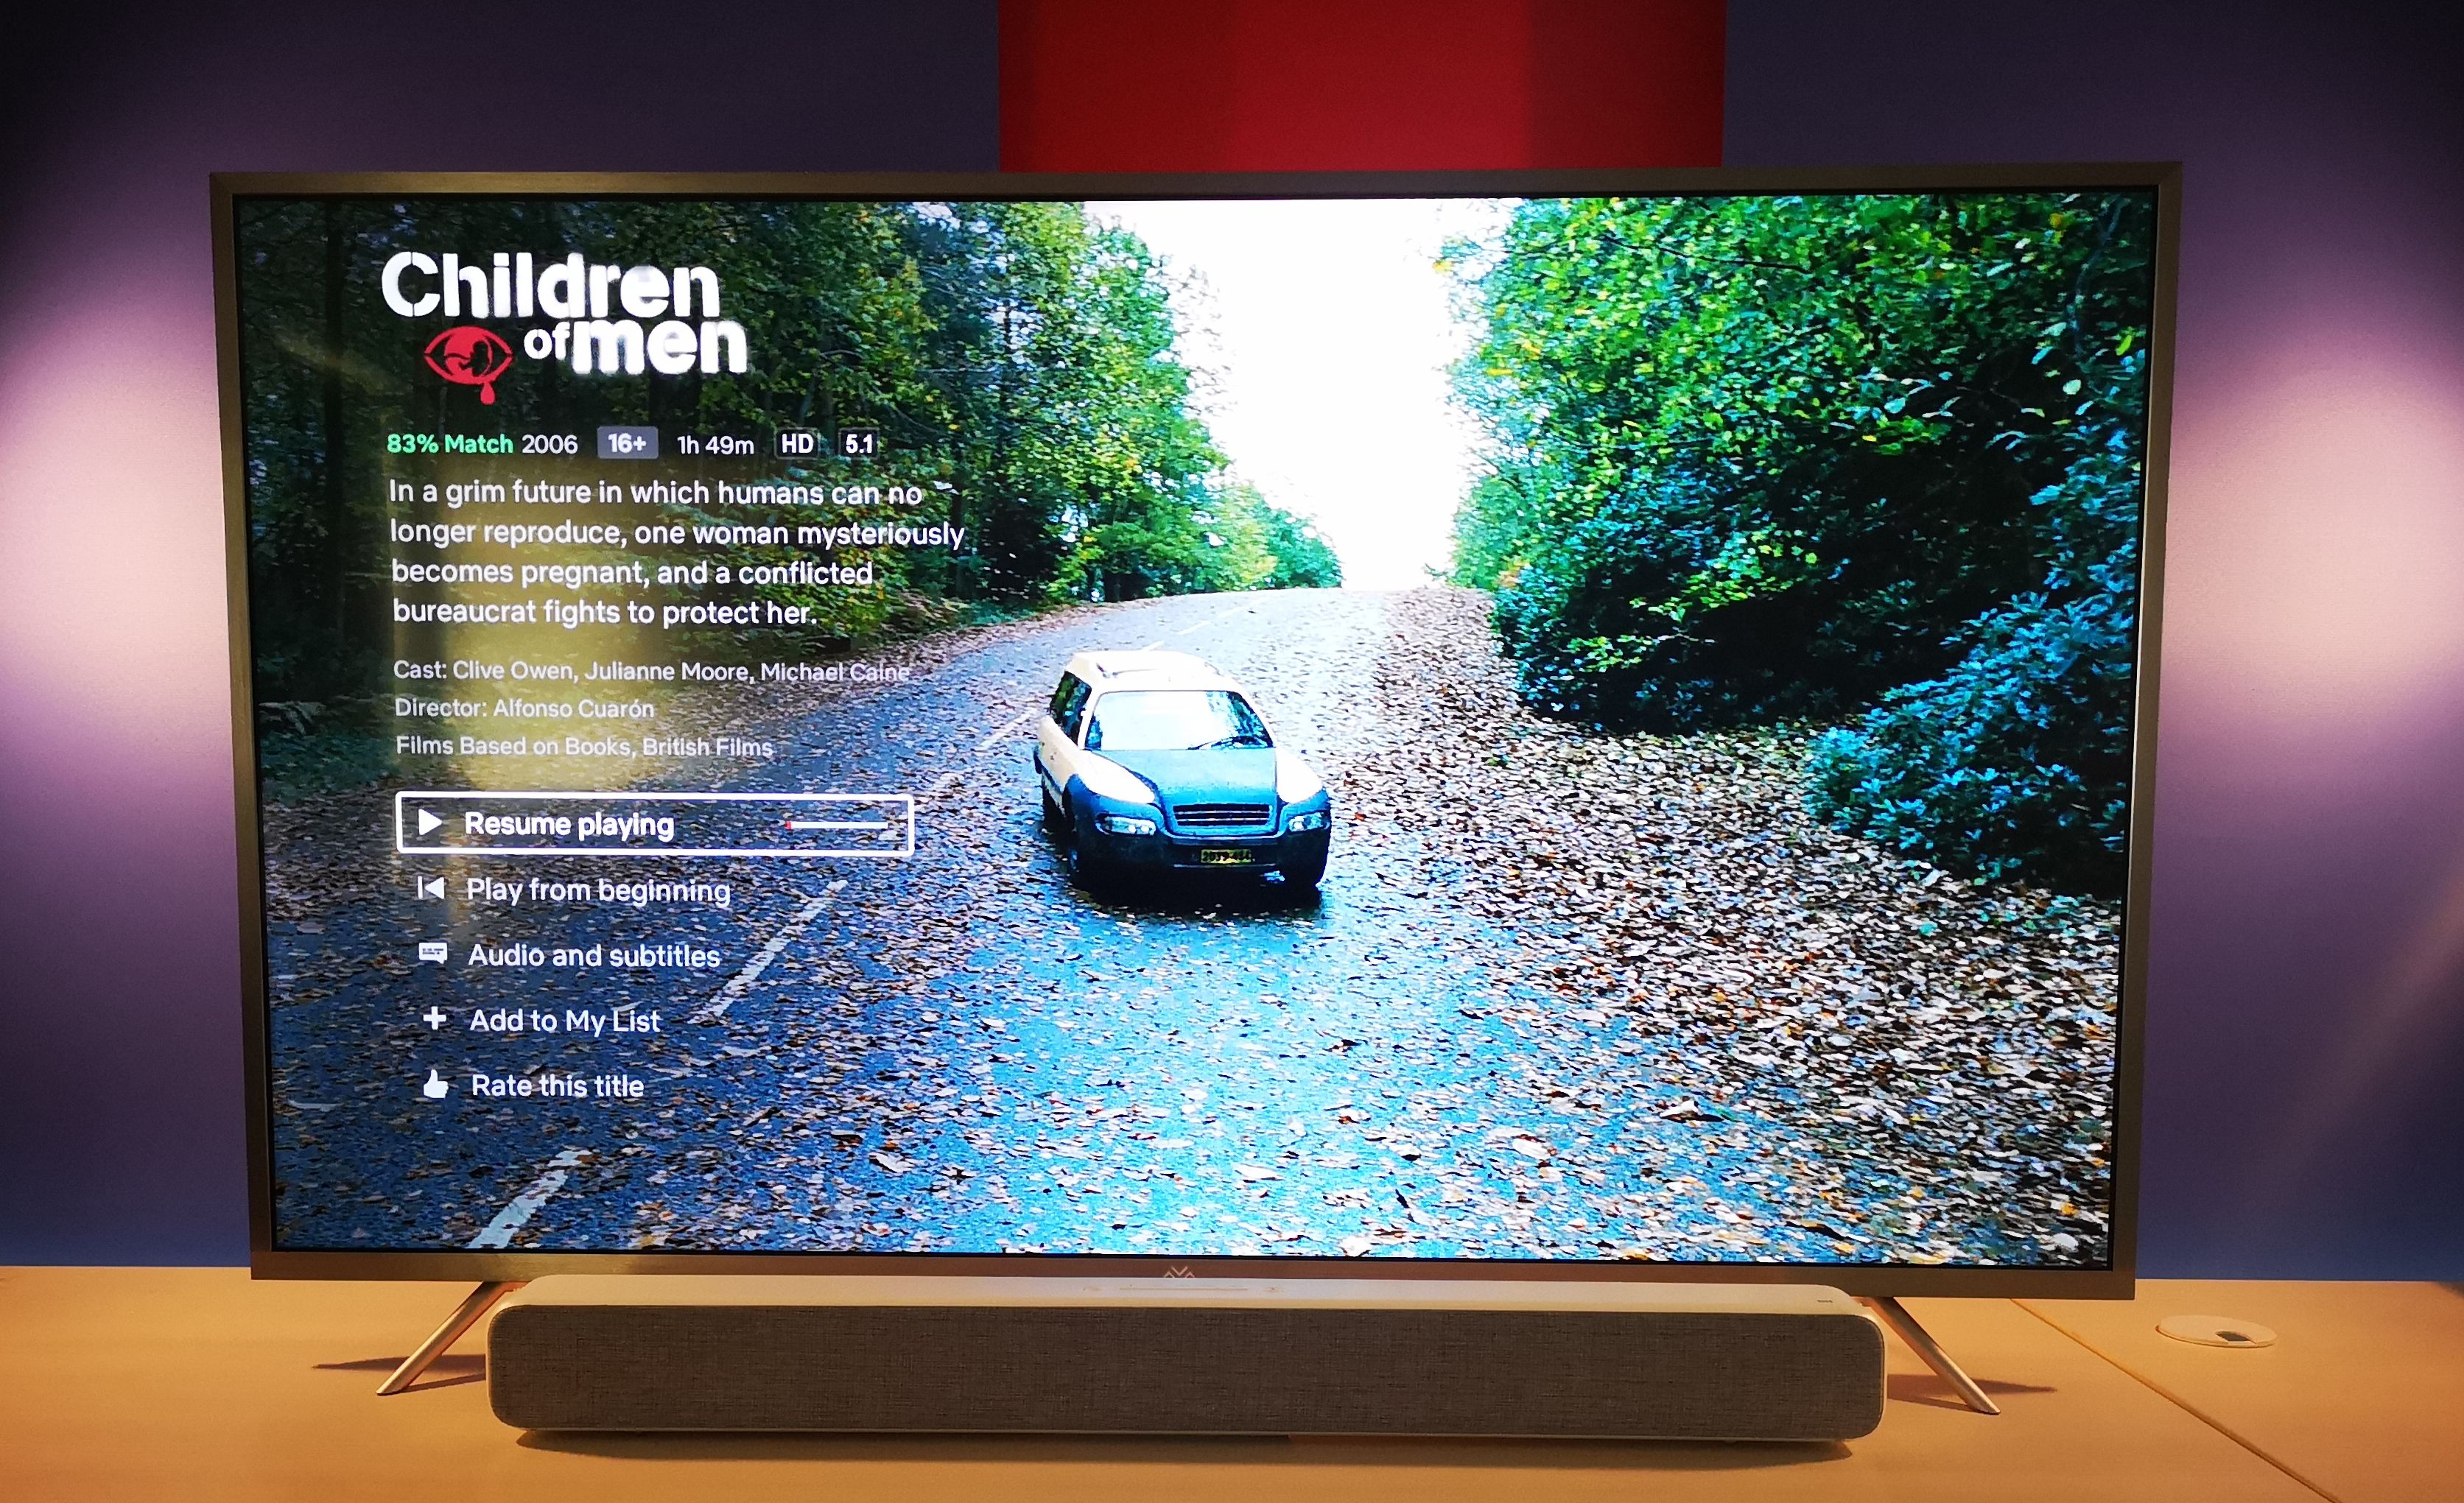 Xiaomi Mi Soundbar Review: High On Style, Low On Substance